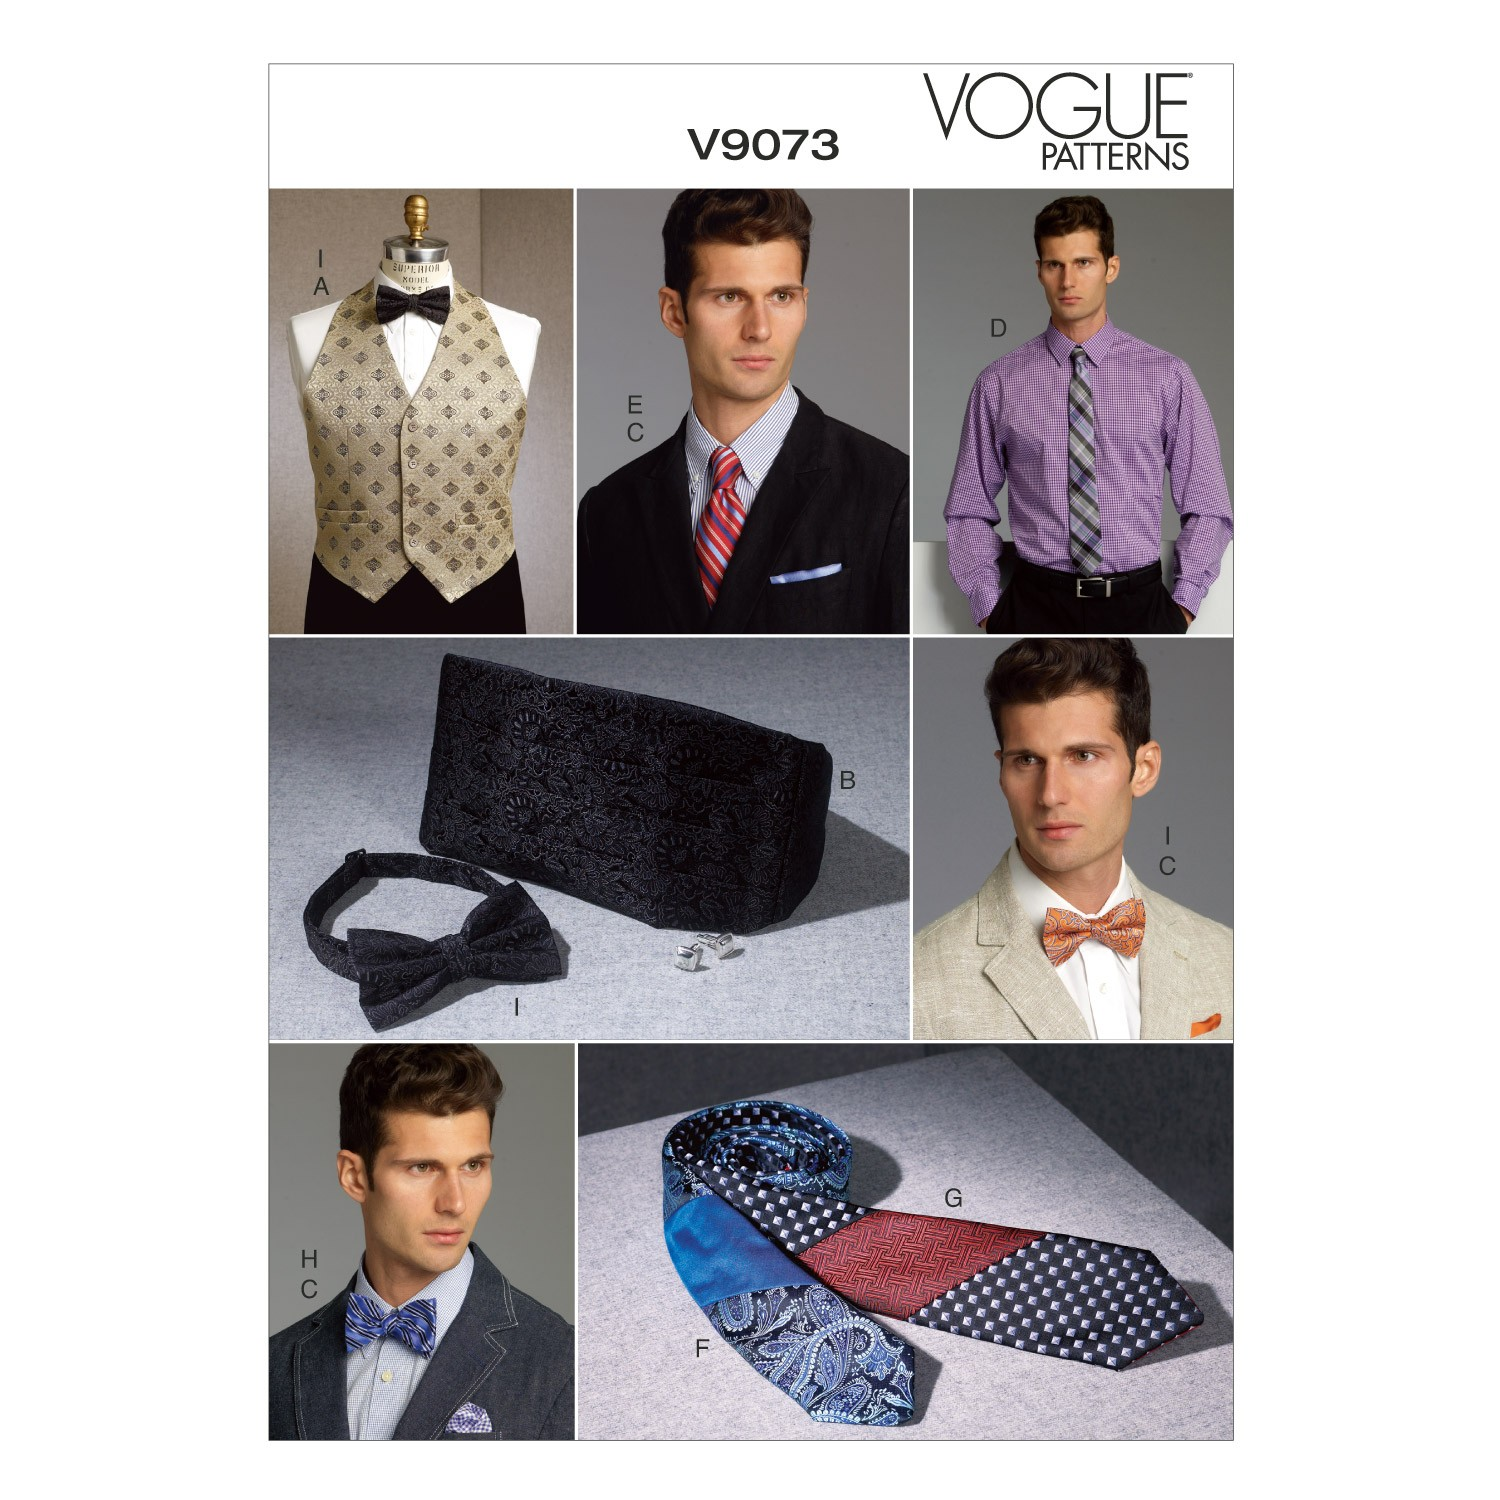 Vogue Sewing Pattern V9073 Men's Vest Cummerbund Pocket Square & Ties